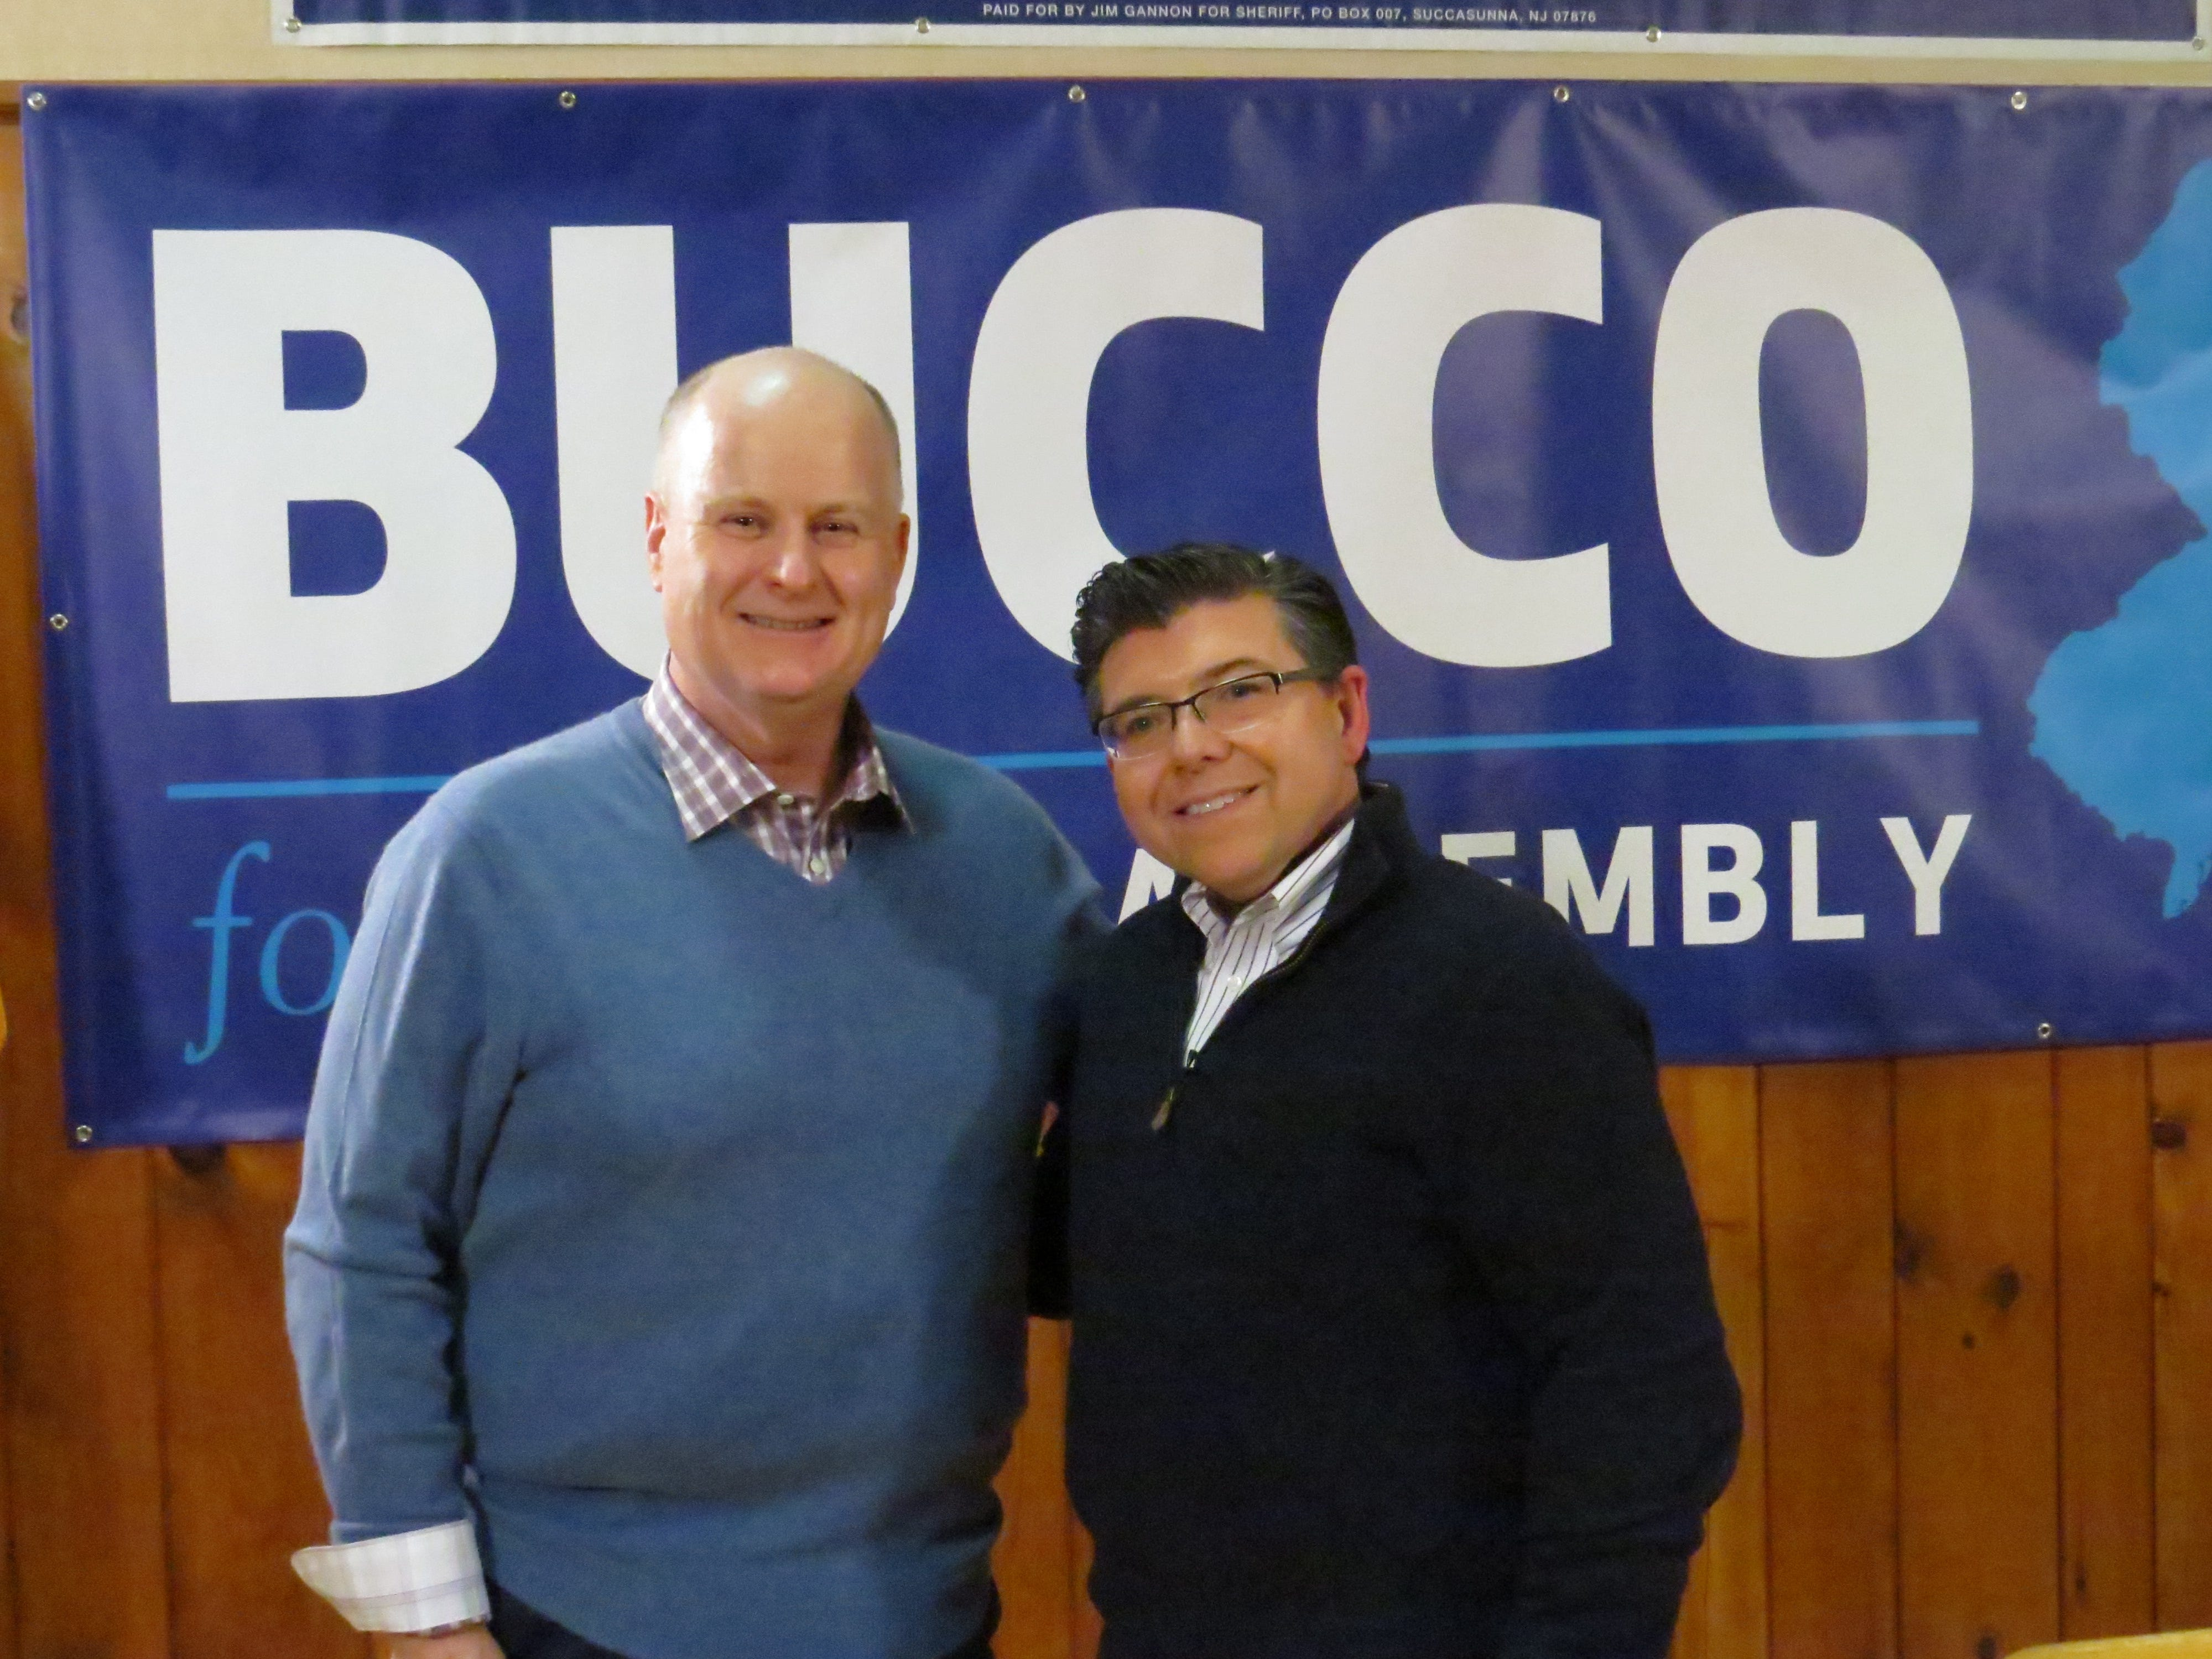 Morris County Sheriff James Gannon, left, announces  his re-election campaign along with Assemblyman Anthony Bucco at the Boonton Sokol Lodge. March 4, 2019.